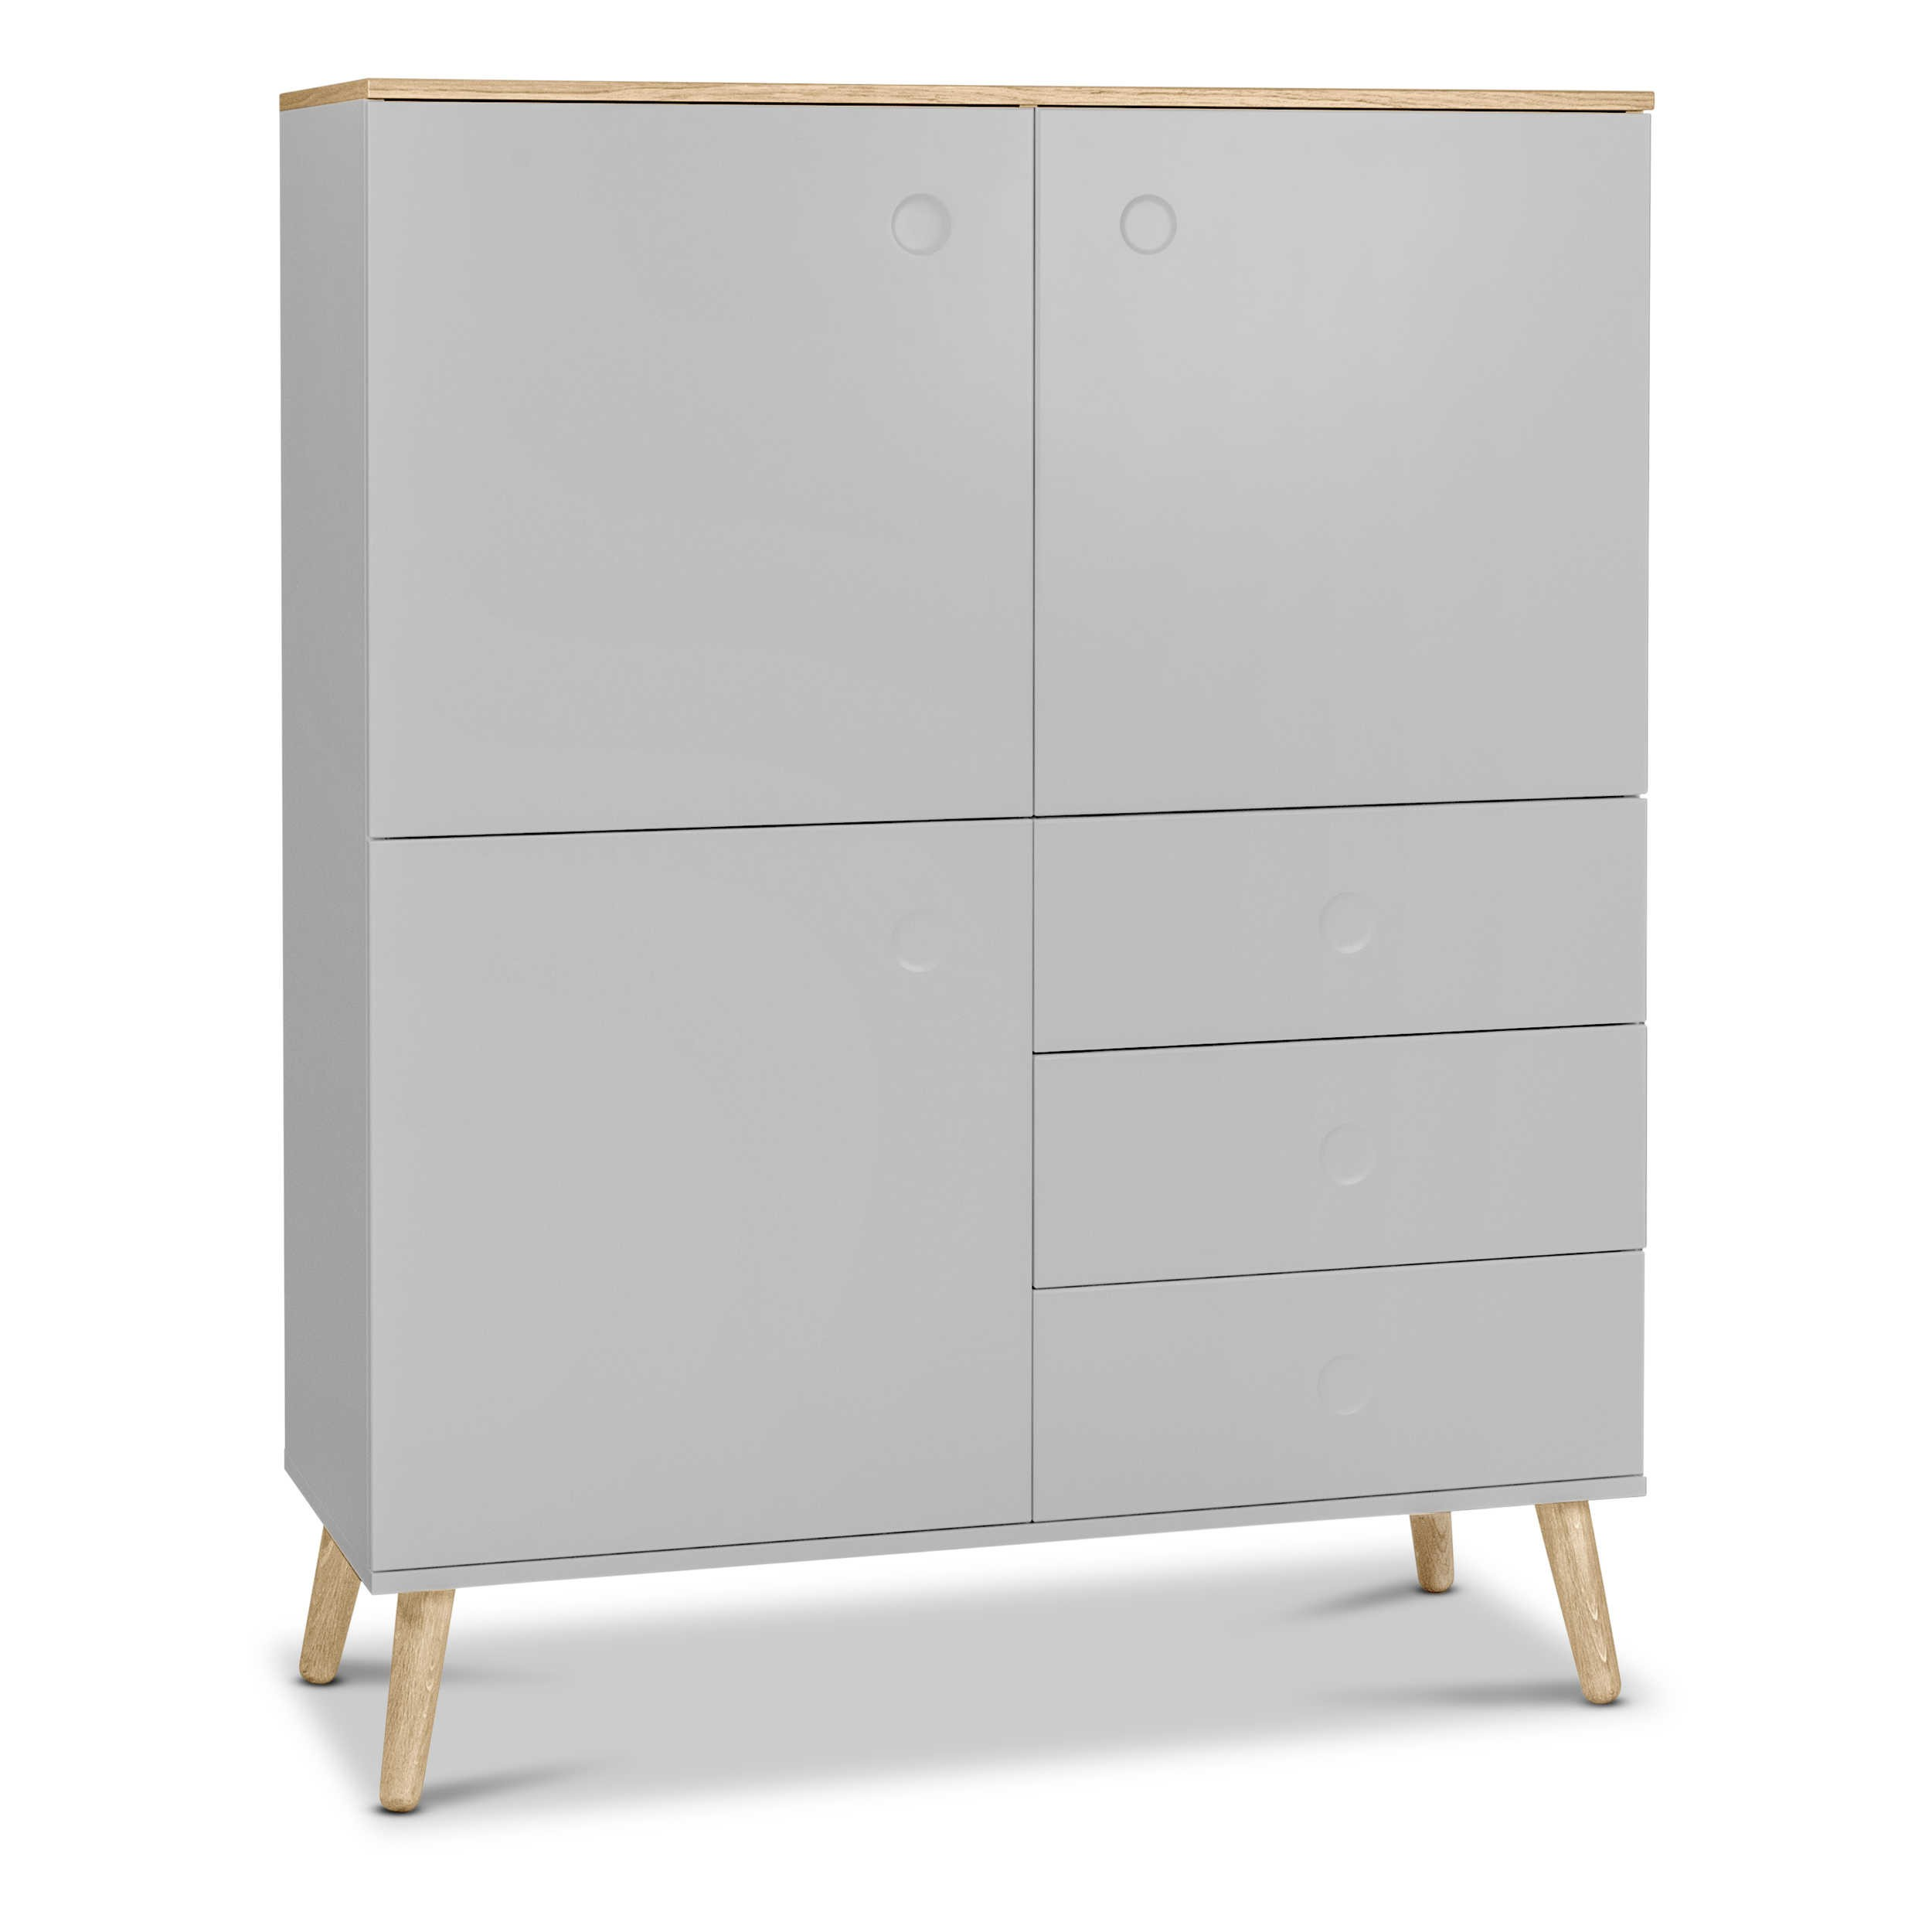 tenzo highboard dot grau lack hochglanz online kaufen bei woonio. Black Bedroom Furniture Sets. Home Design Ideas